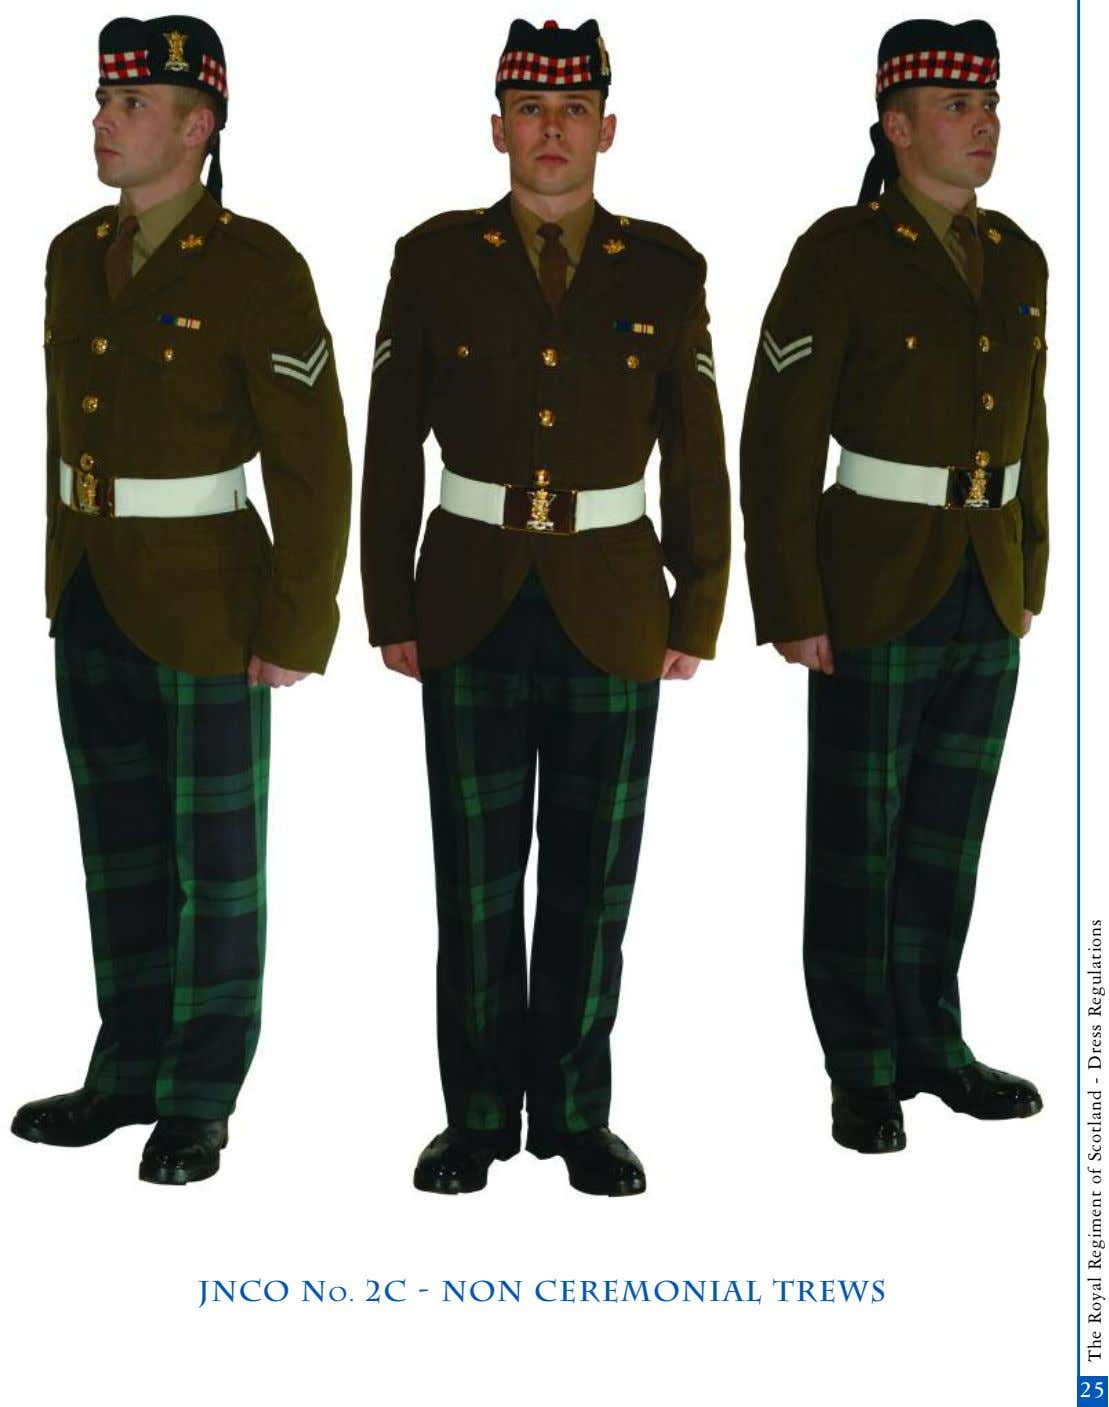 jnco No. 2c - non Ceremonial trews 25 The Royal Regiment of Scotland - Dress